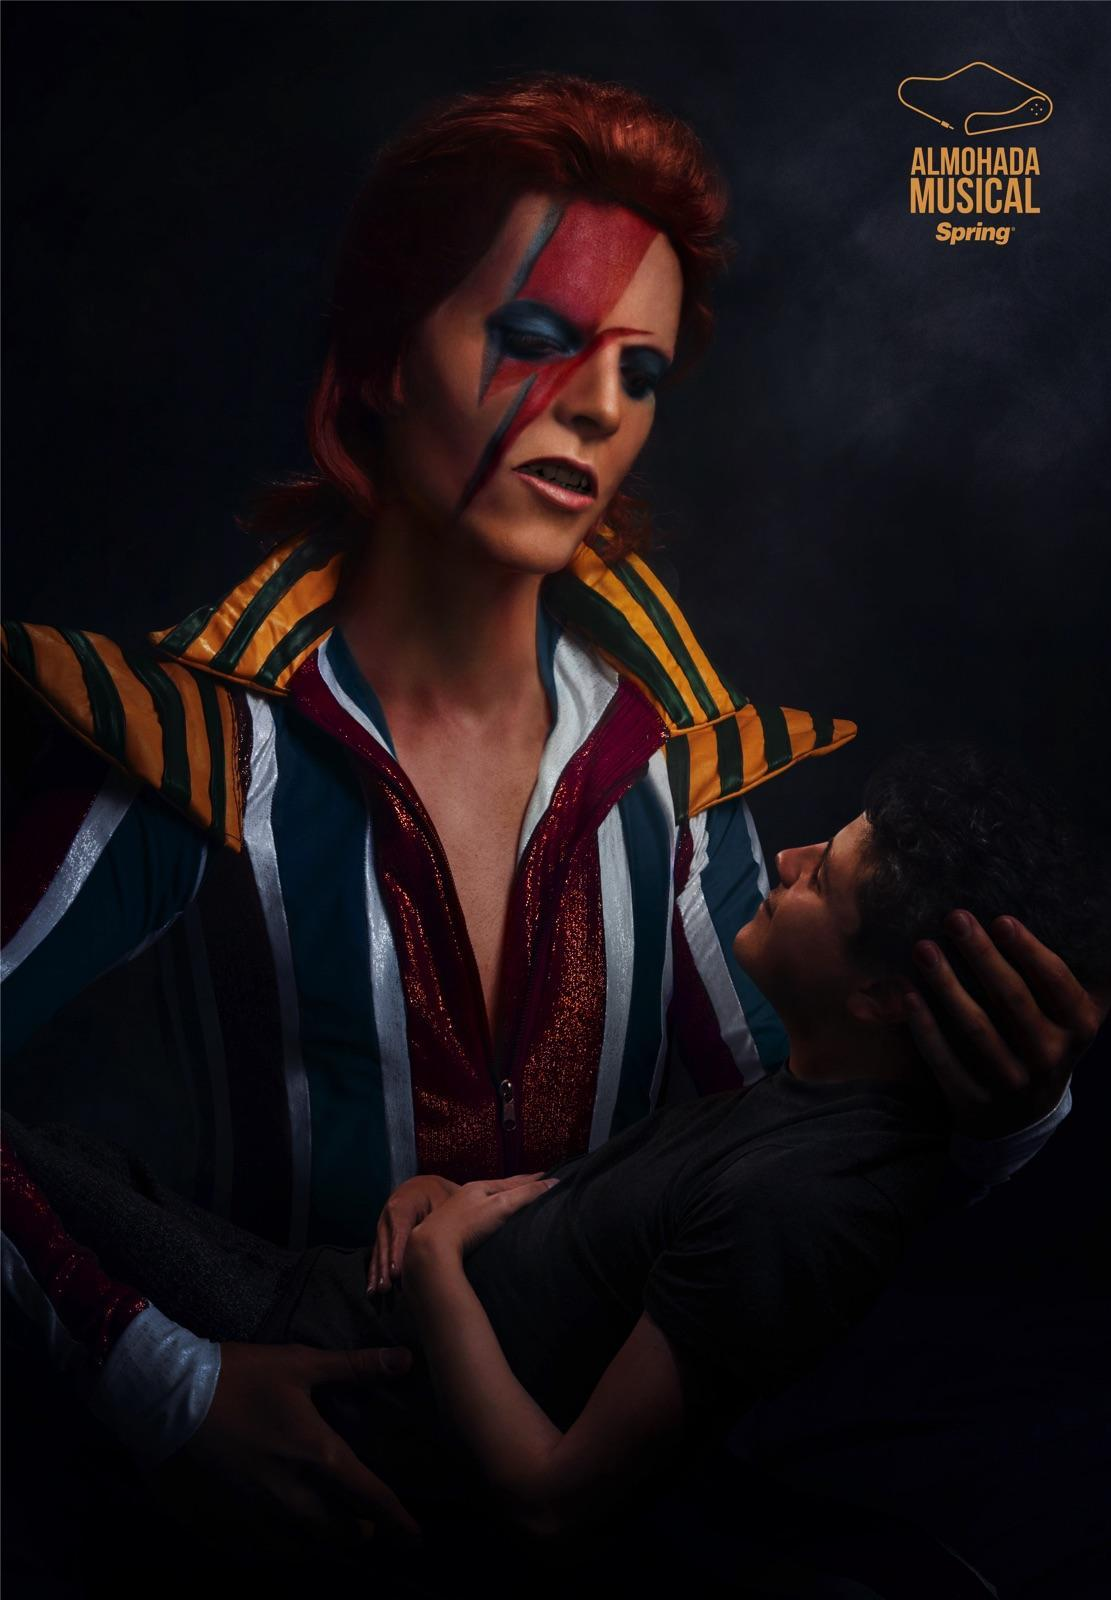 bowie_thumb_0